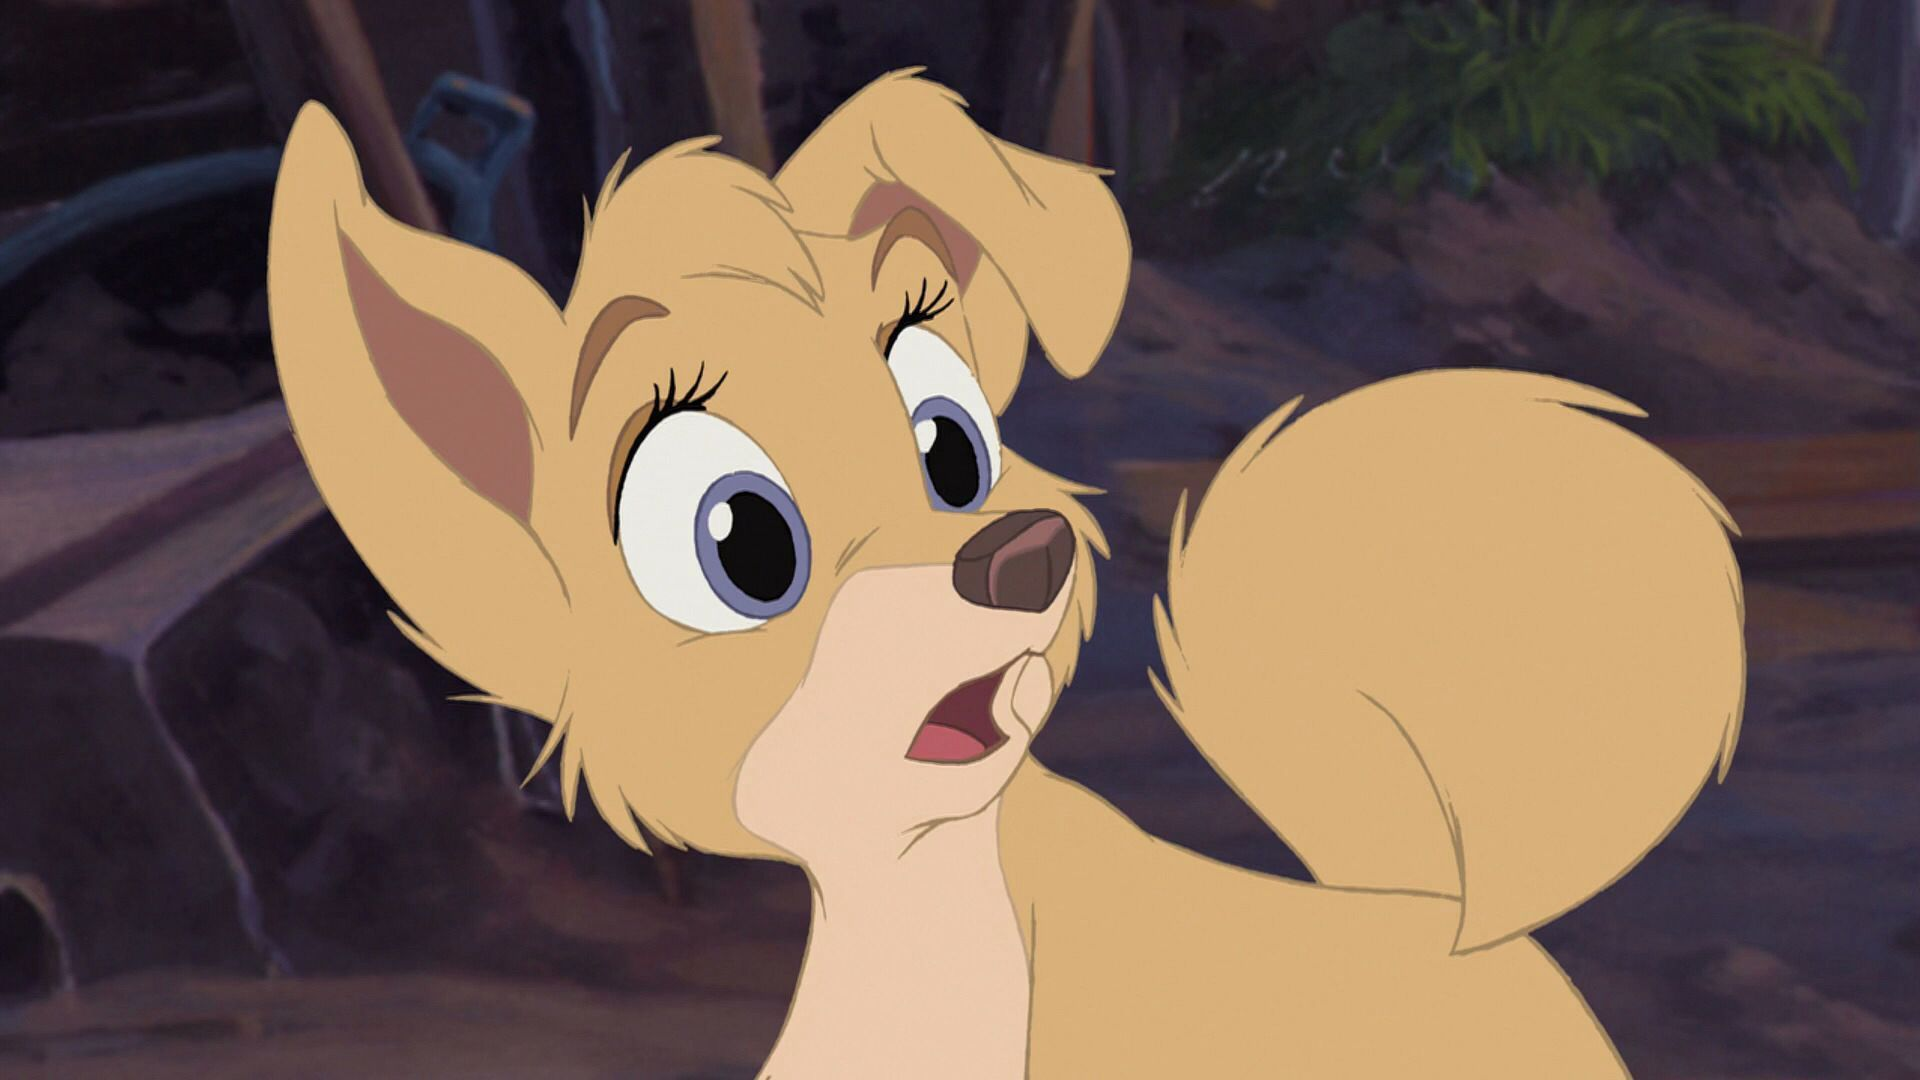 Angel Lady And The Tramp 2 Google Search Lady And The Tramp Cartoon Memes Disney Dogs